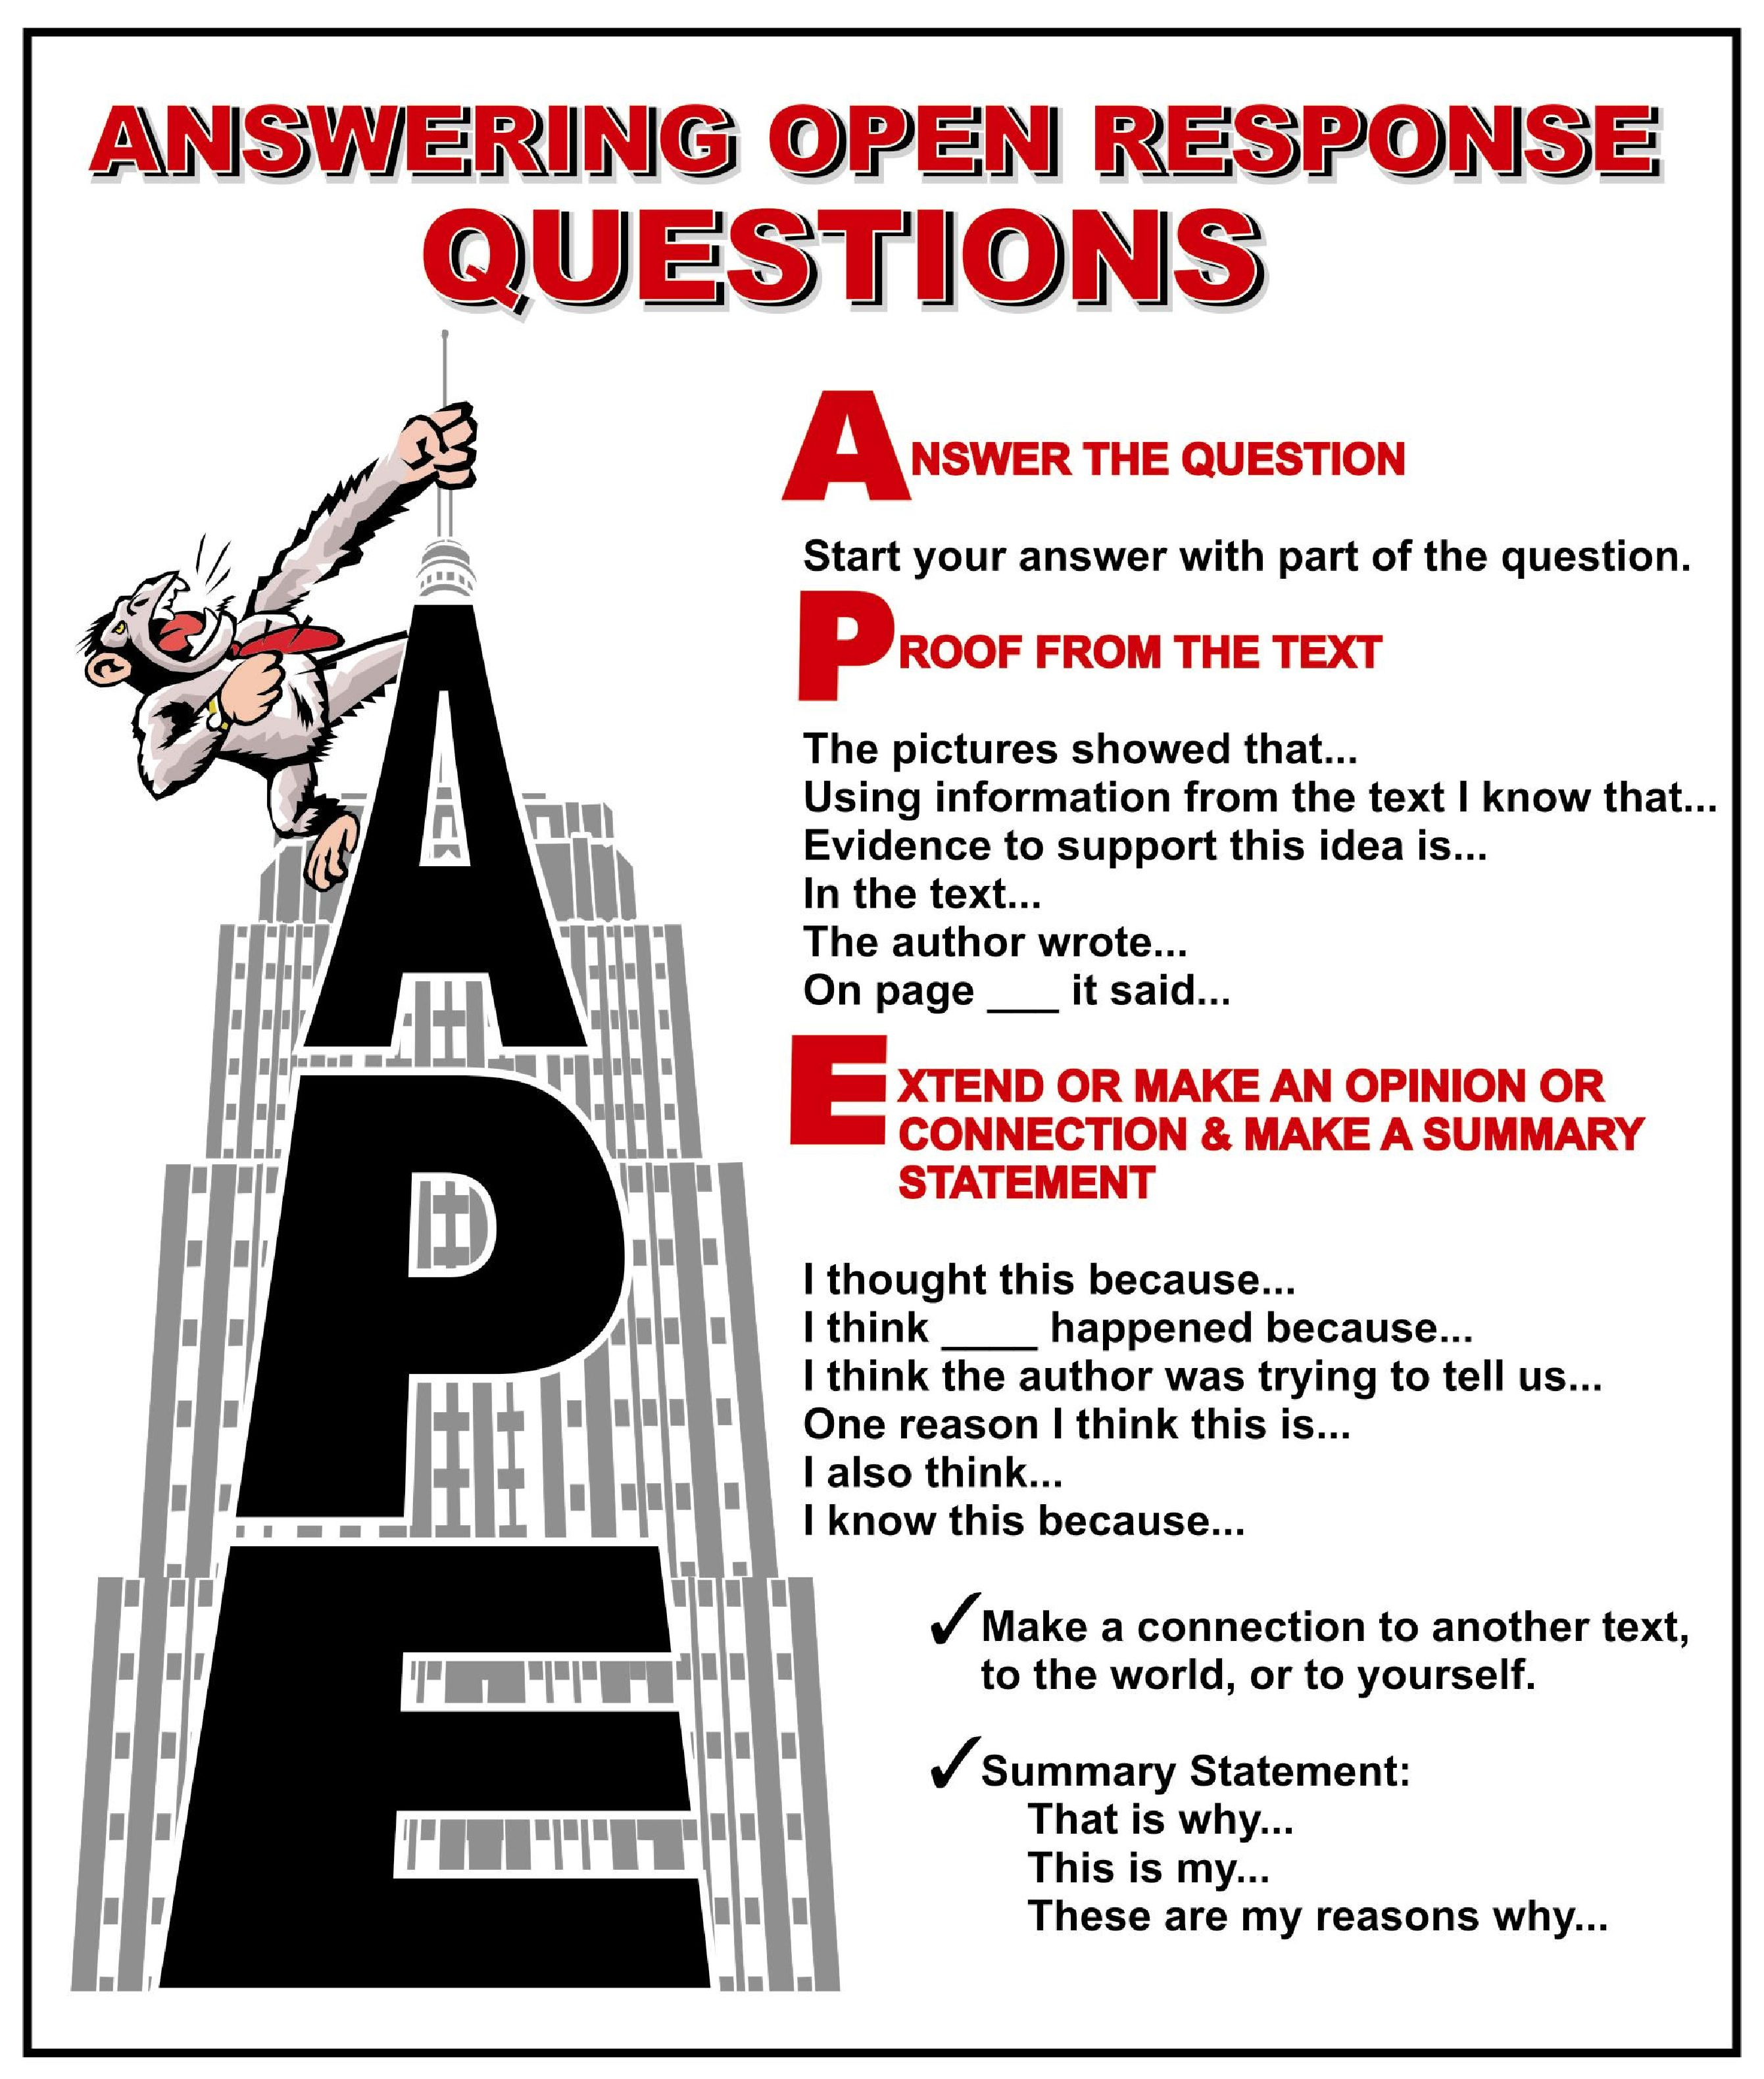 A P E Responding To Open Ended Questions